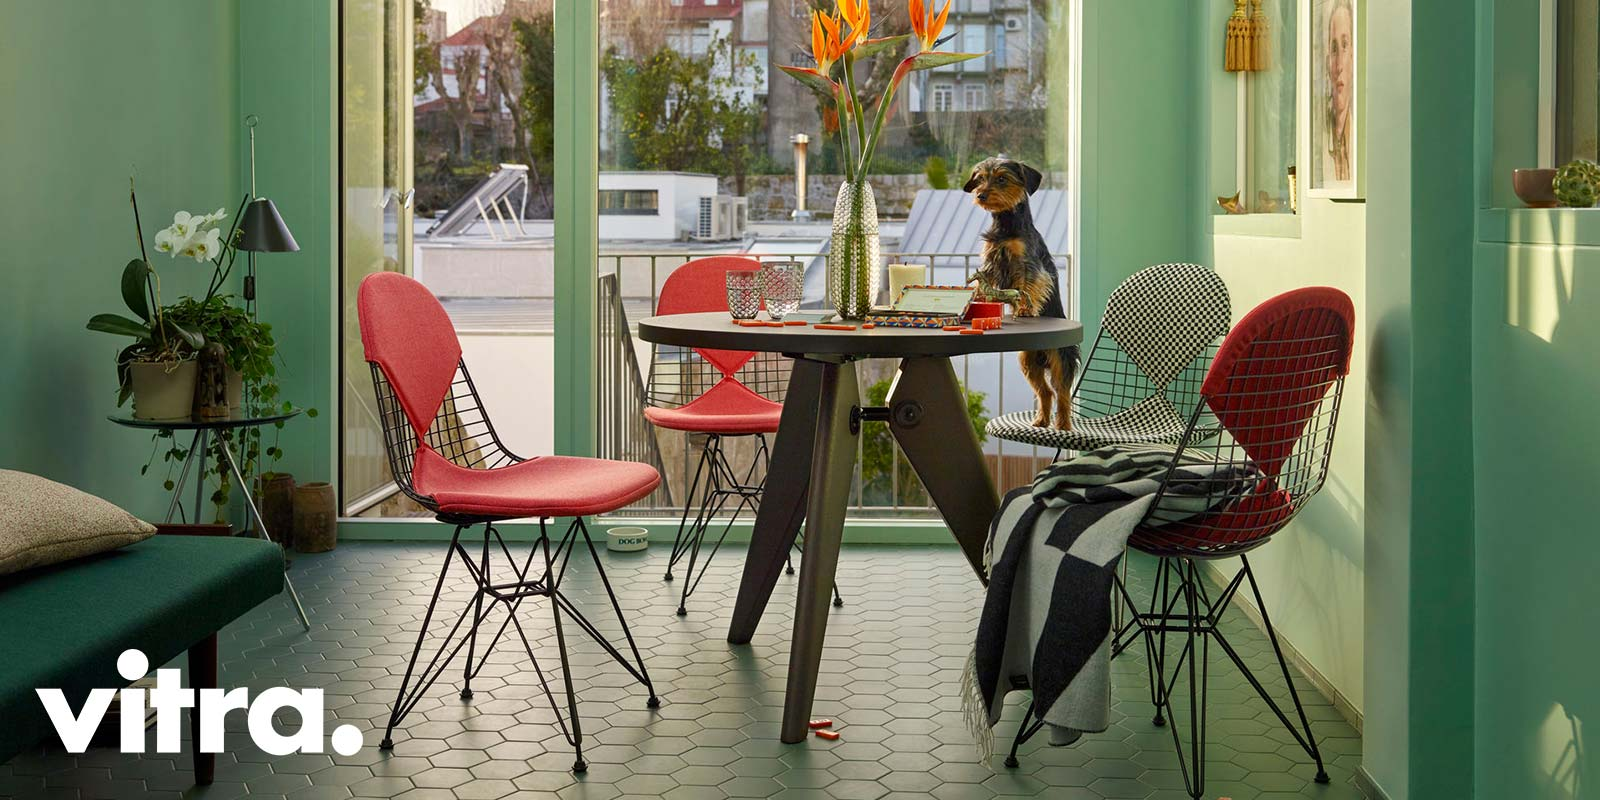 Vitra DKR-2 Chairs & Prouve Table